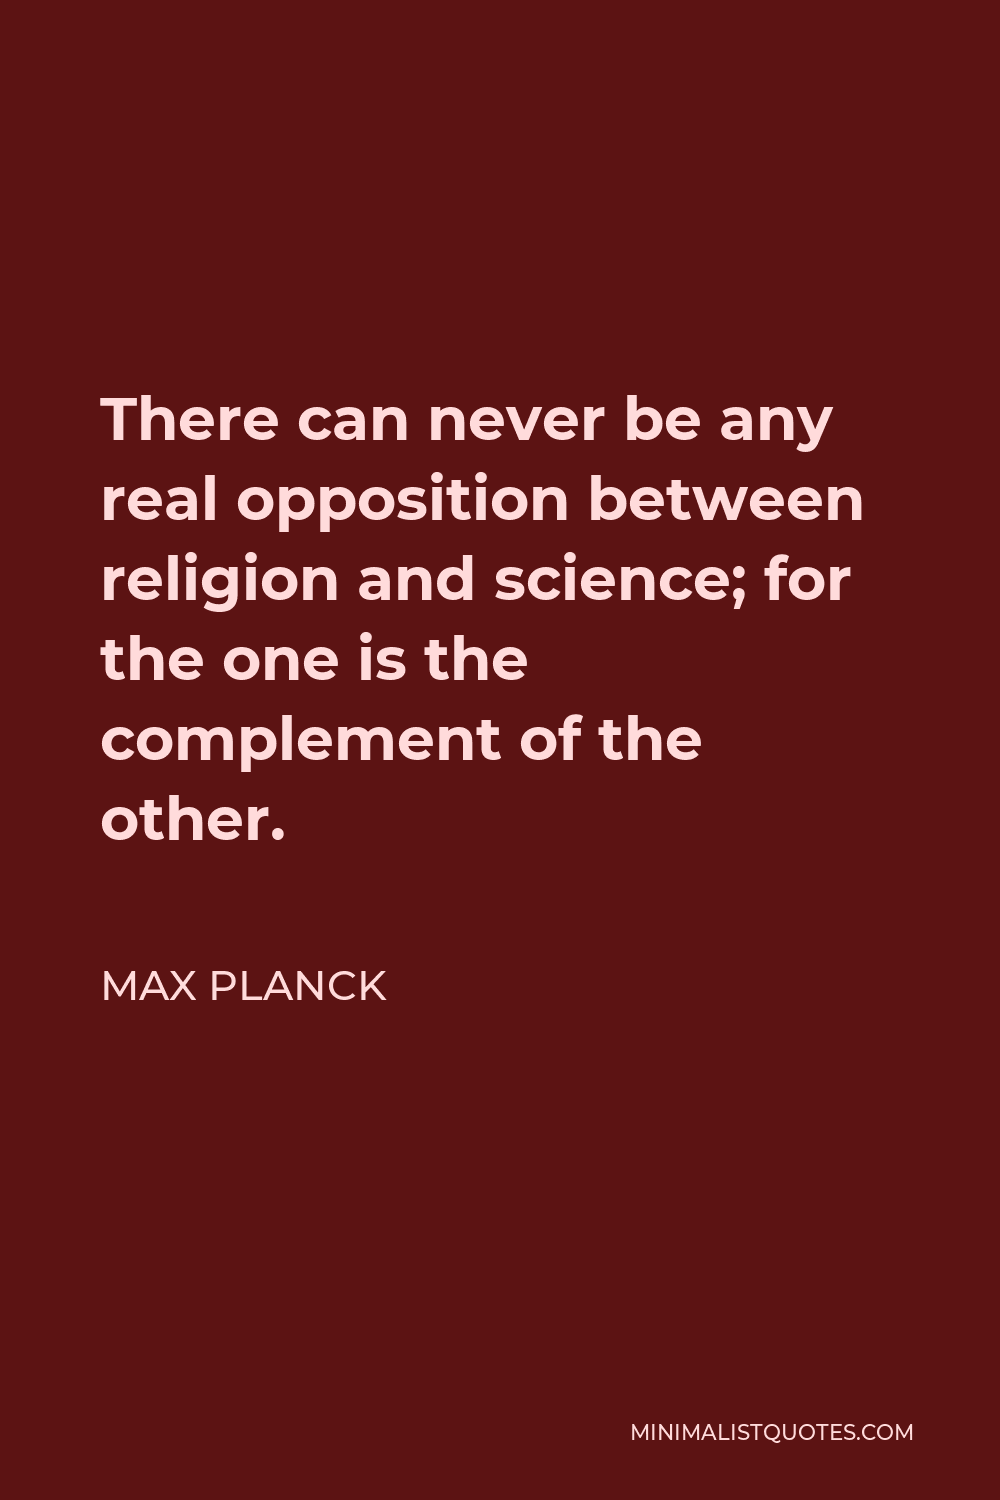 Max Planck Quote - There can never be any real opposition between religion and science; for the one is the complement of the other.